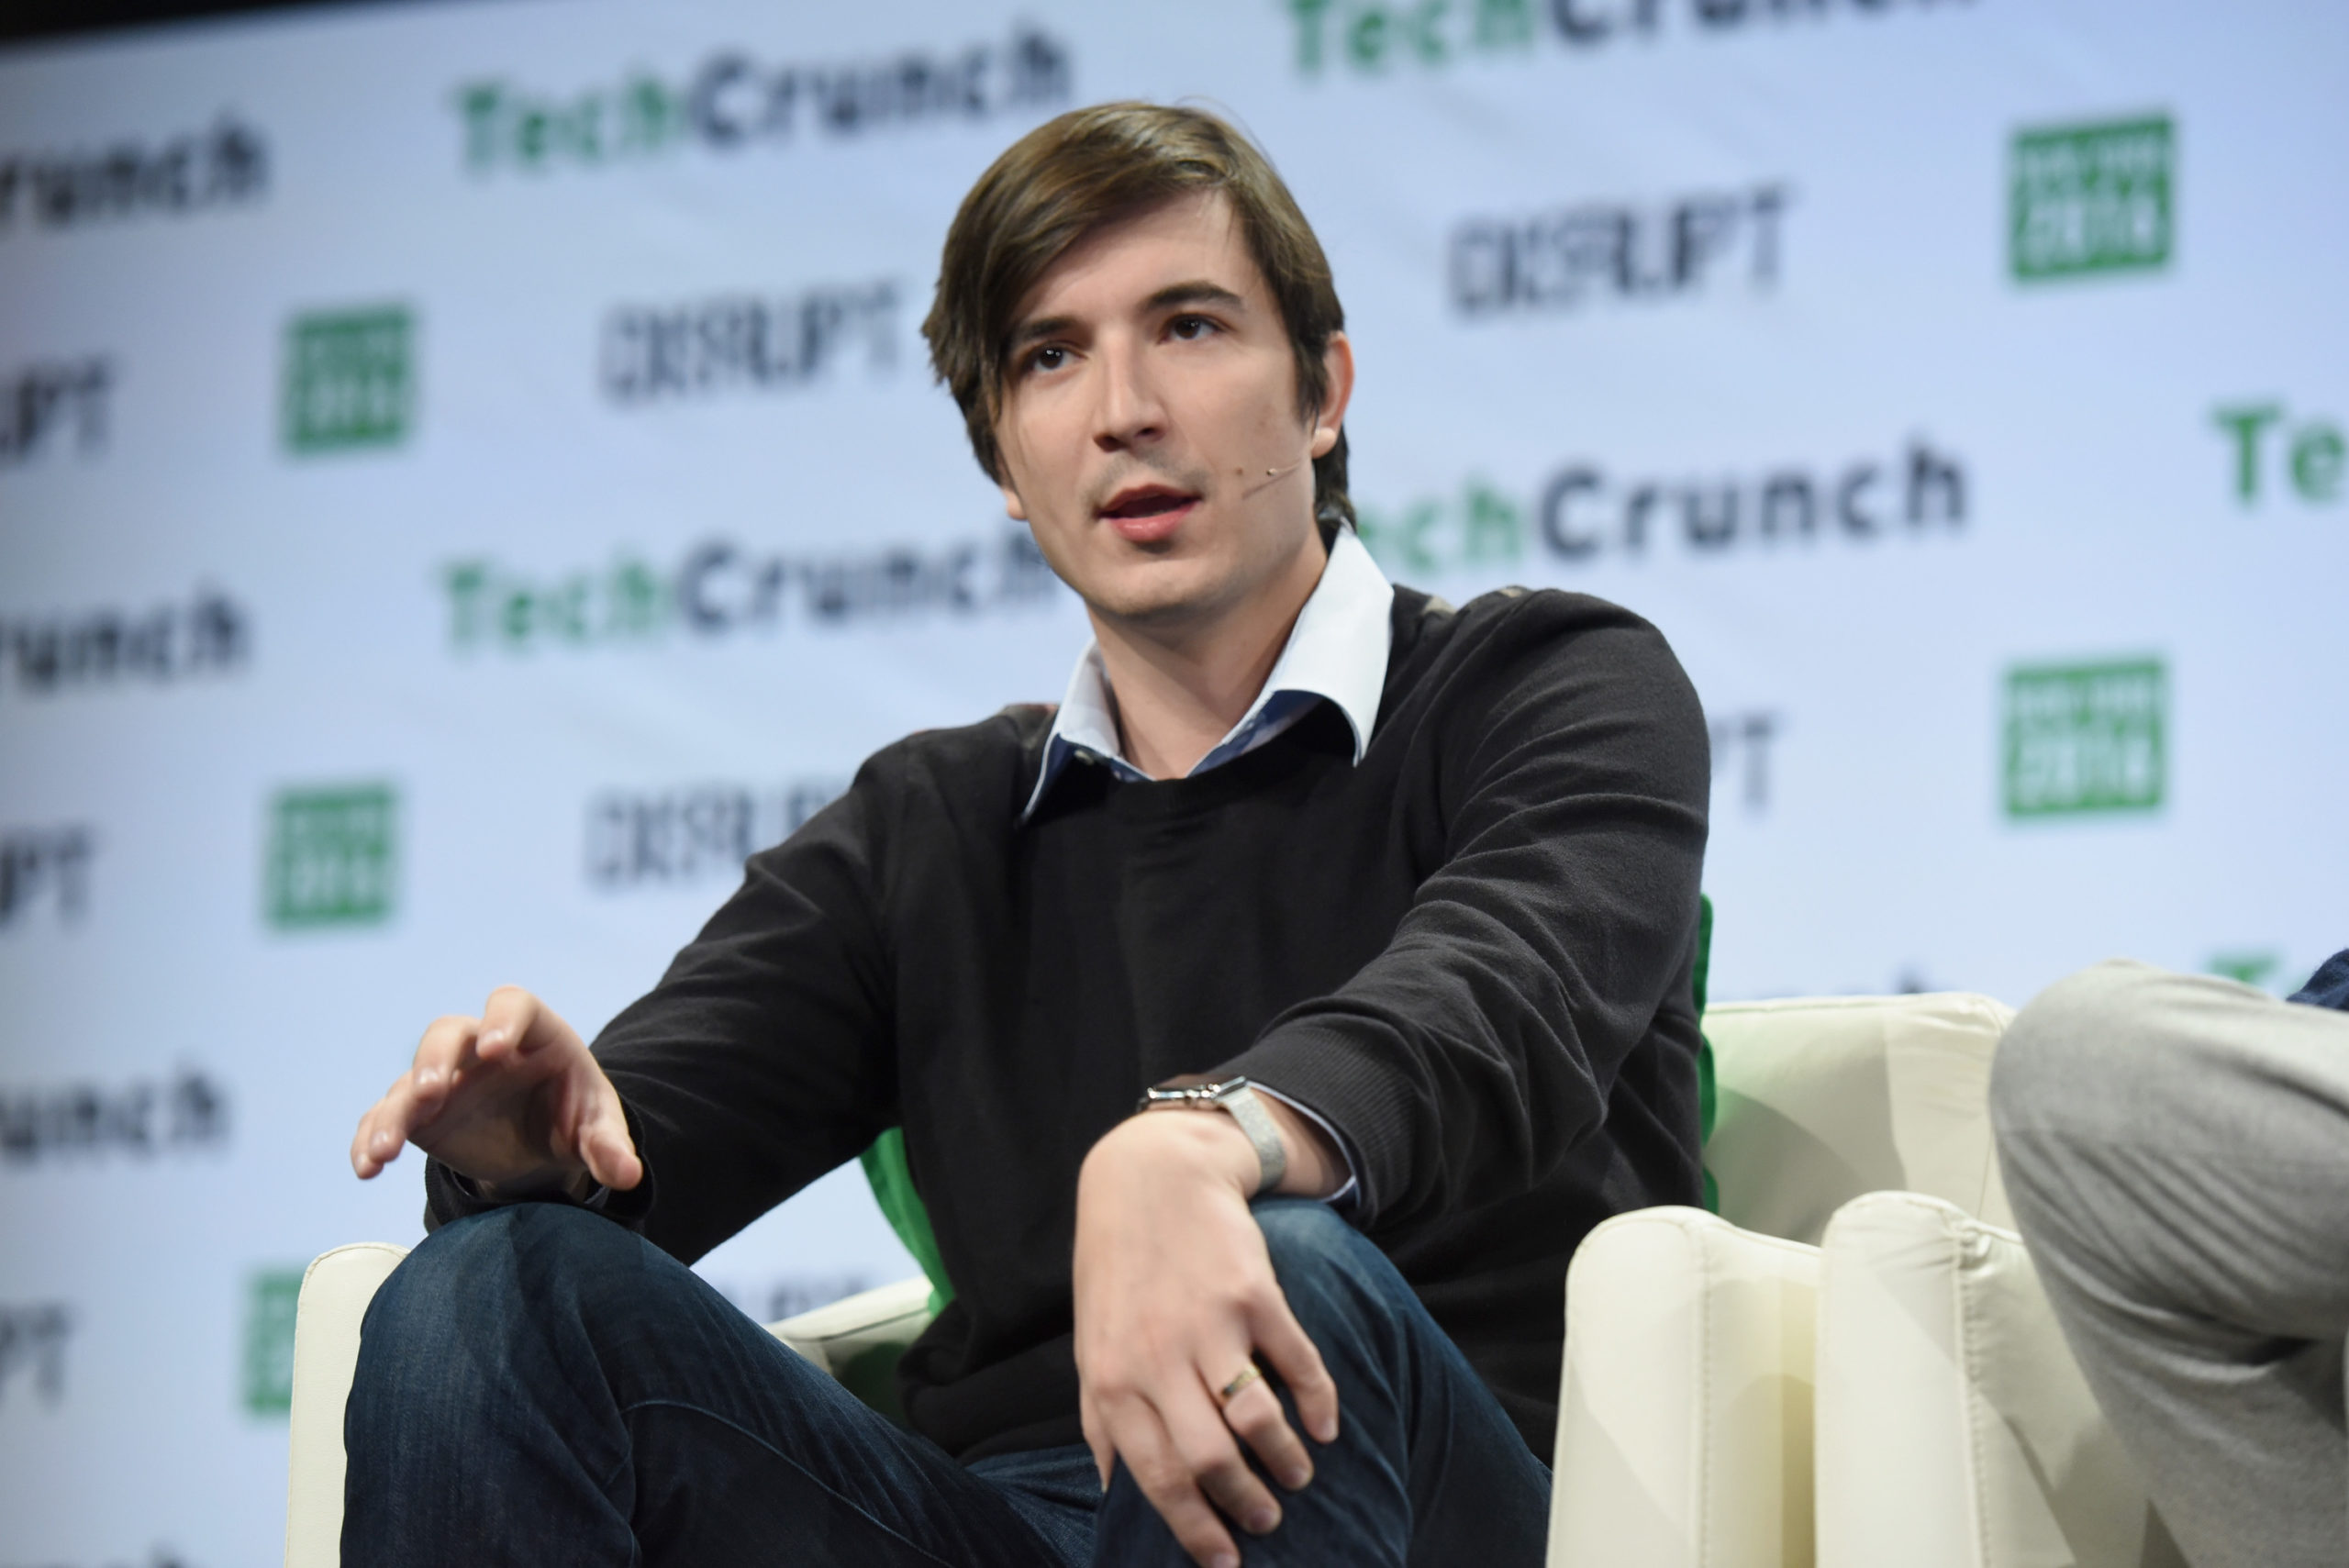 CEO of Robinhood Vlad Tenev speaks onstage during the annual TechCrunch conference in 2016 in New York City. (Noam Galai/Getty Images for TechCrunch)